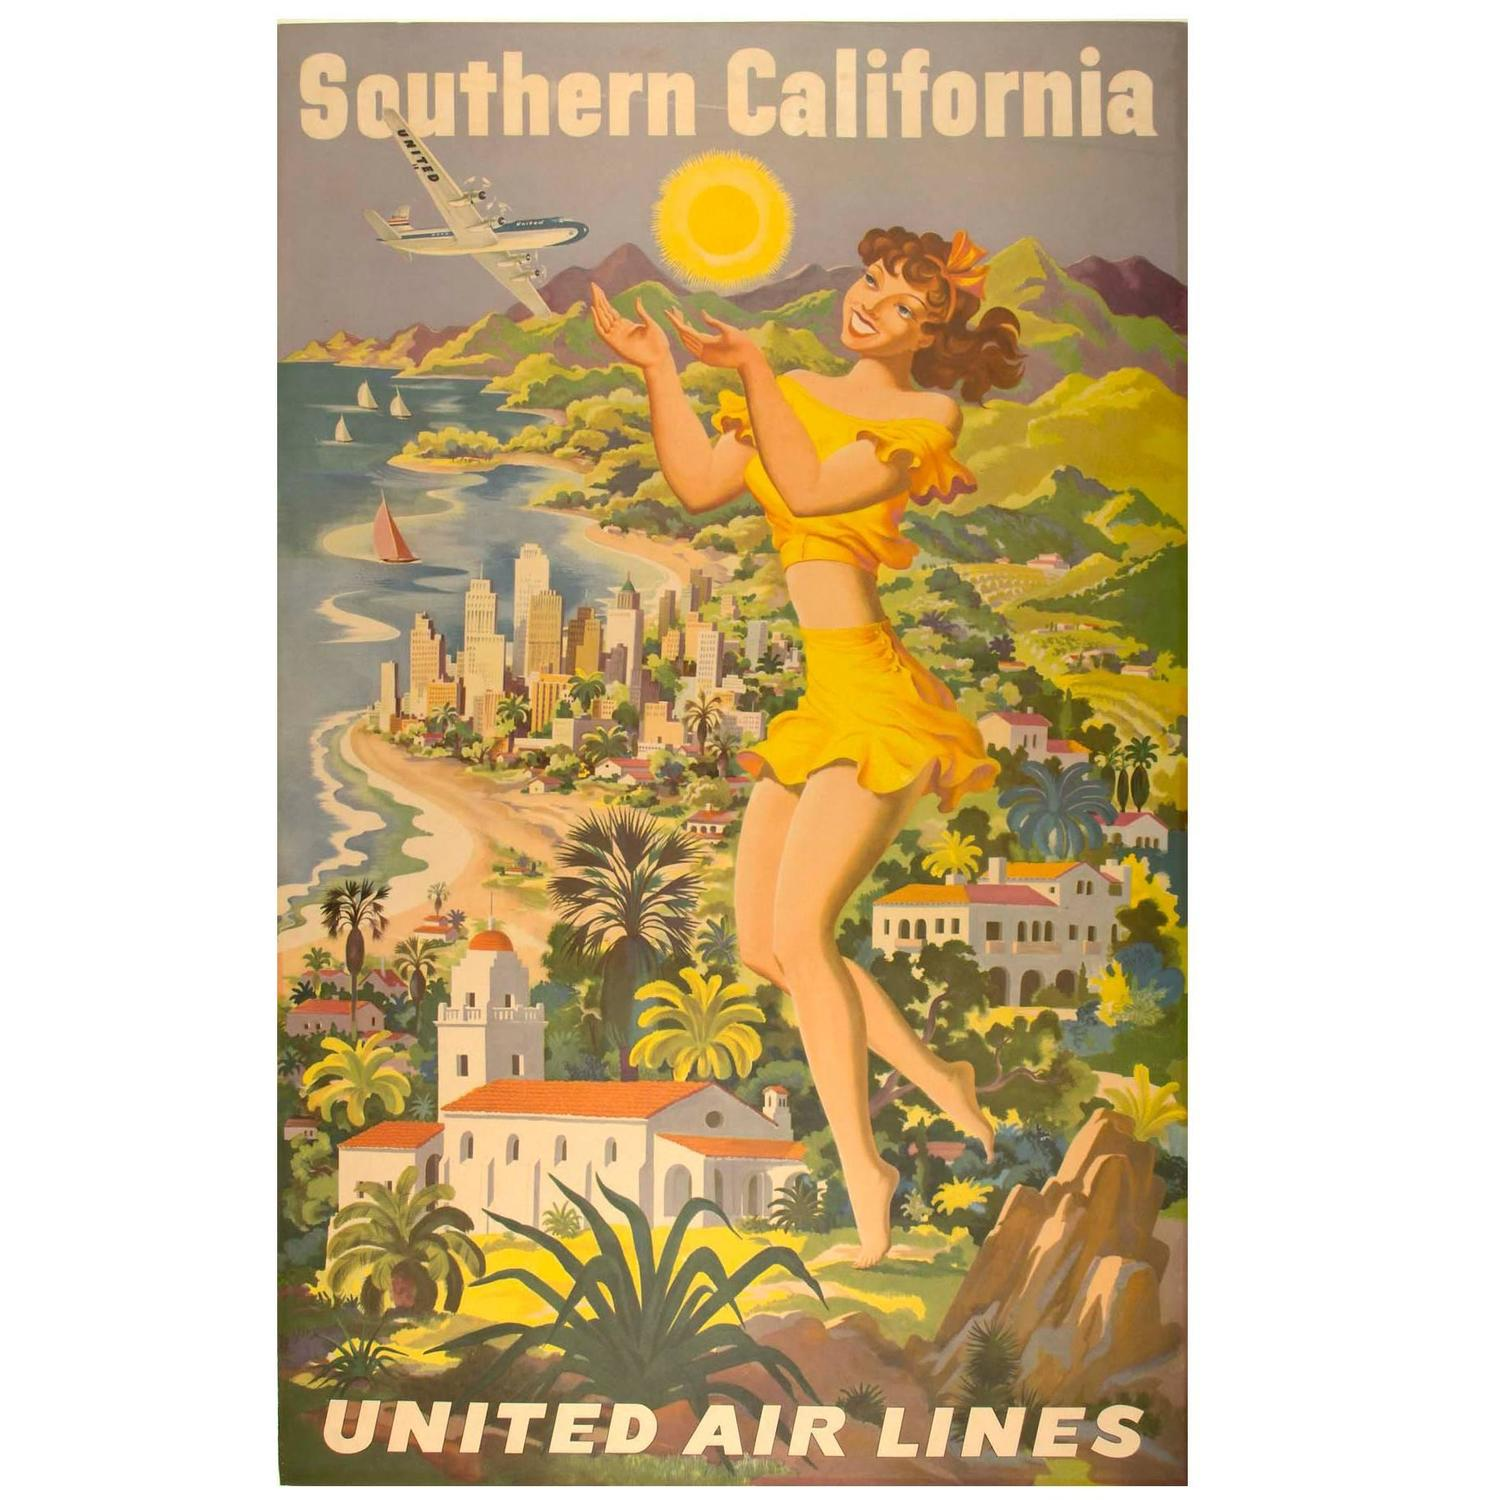 Cheap Posters Yosemite United Air Lines Vintage Travel Poster: Vintage United Airlines Poster For Sale At 1stdibs